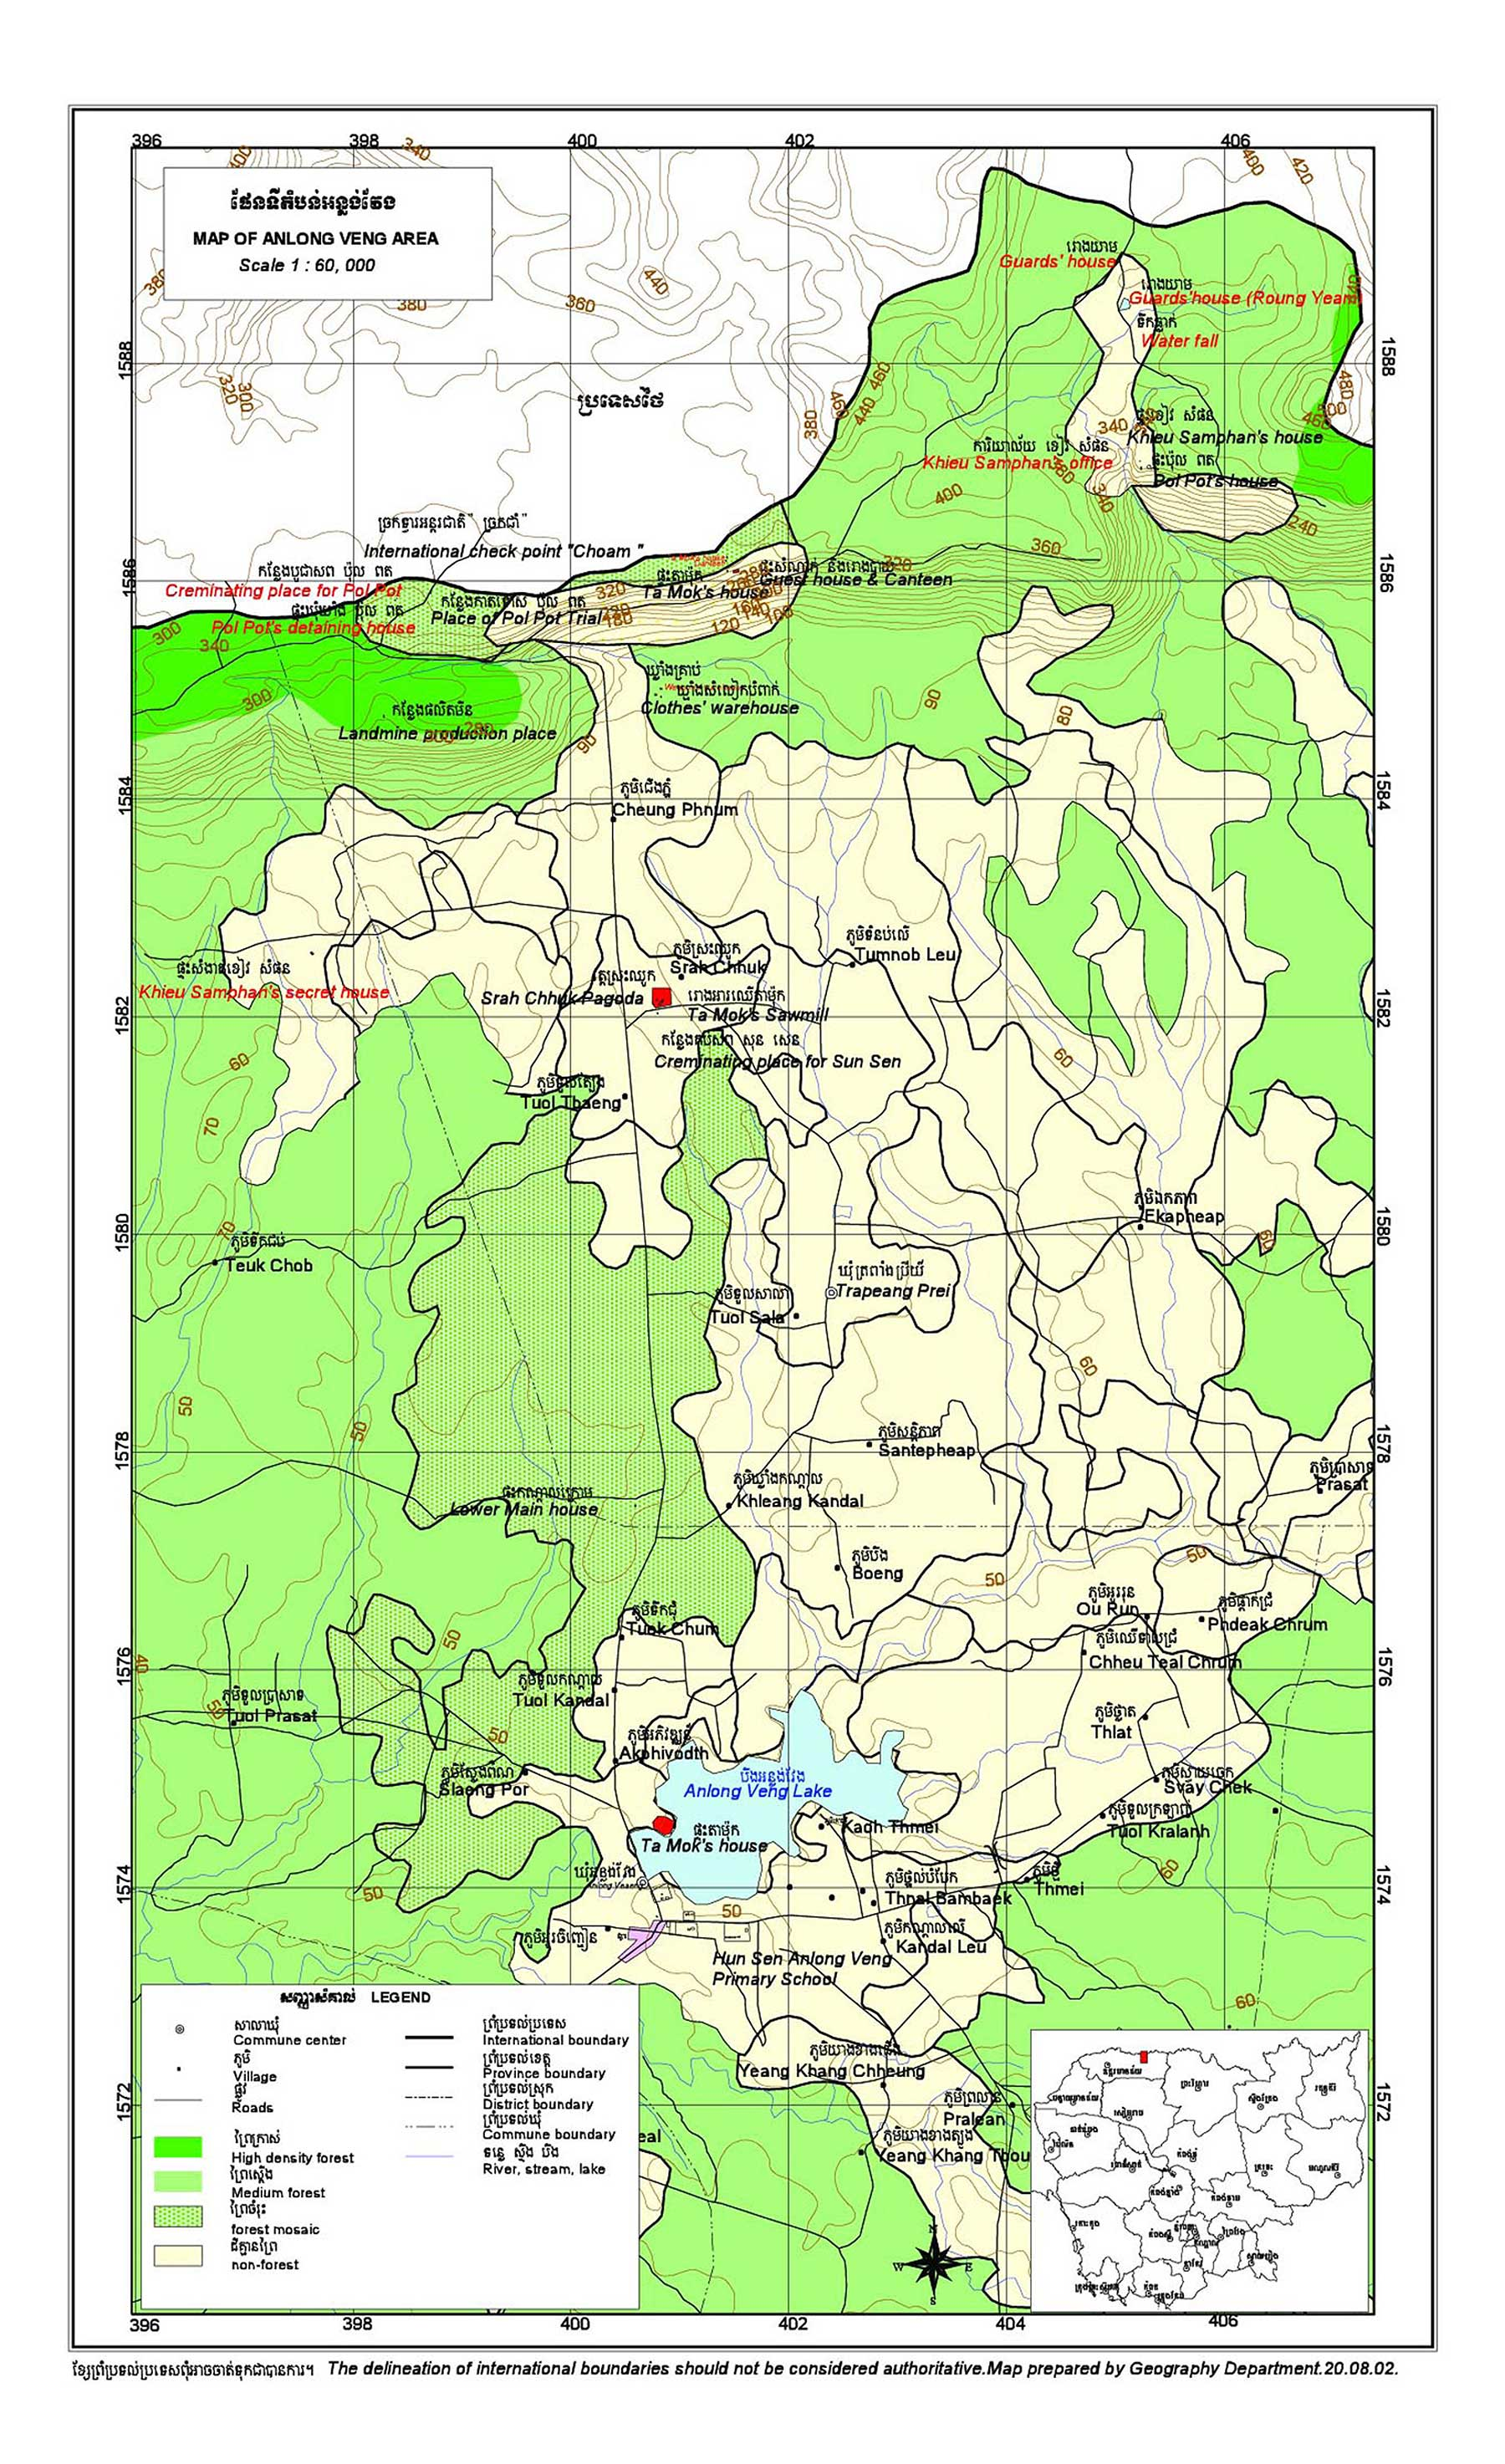 MAP OF ANLONG VENG 2002 (2015)